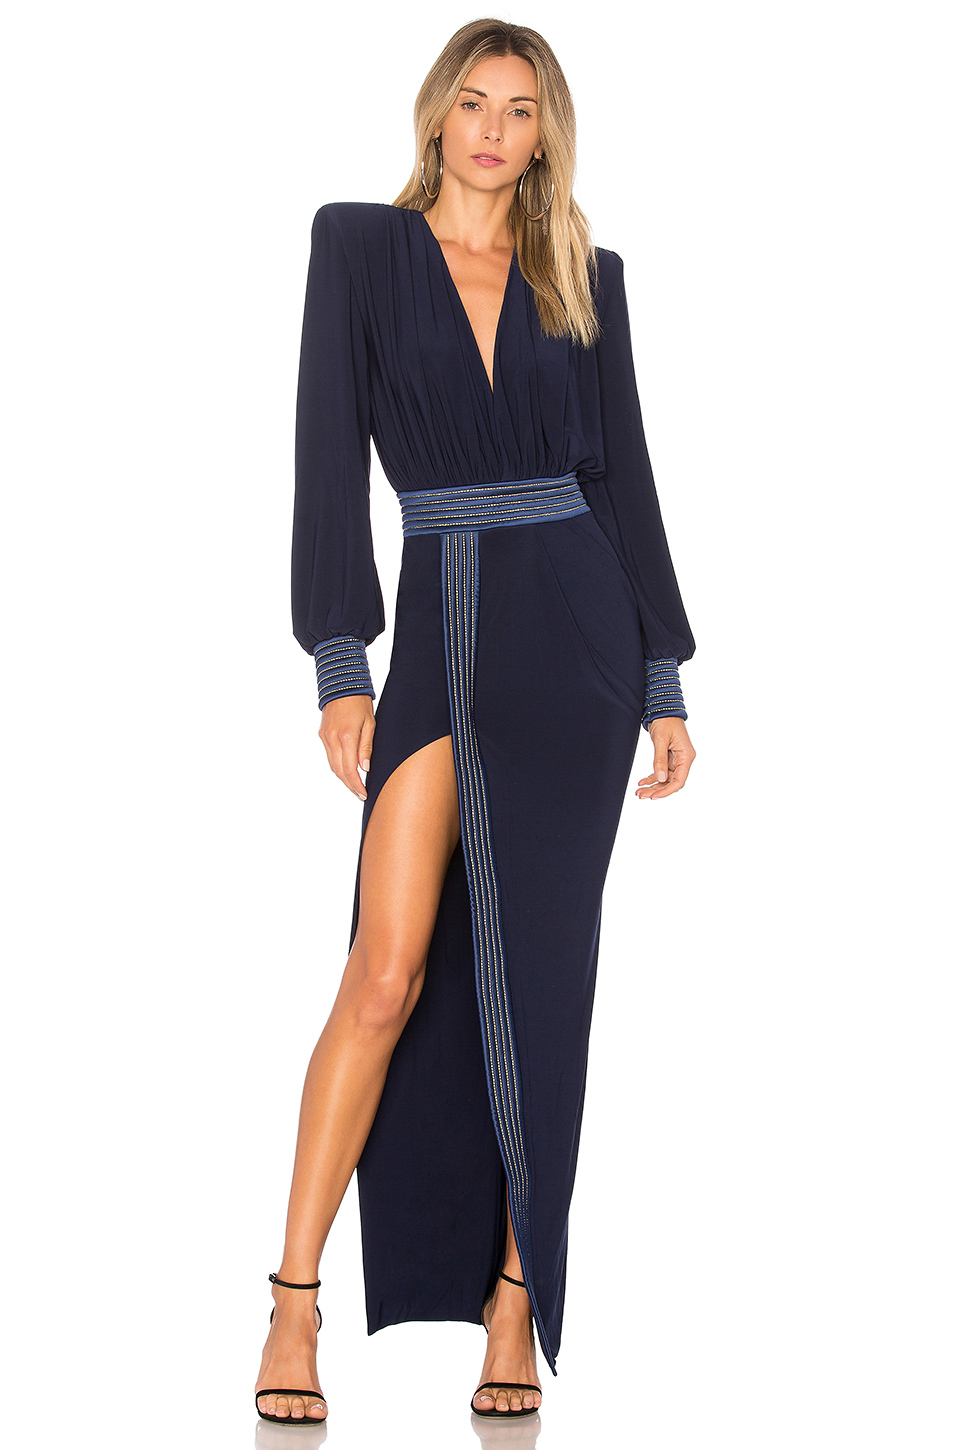 Zhivago Ready Gown in Navy